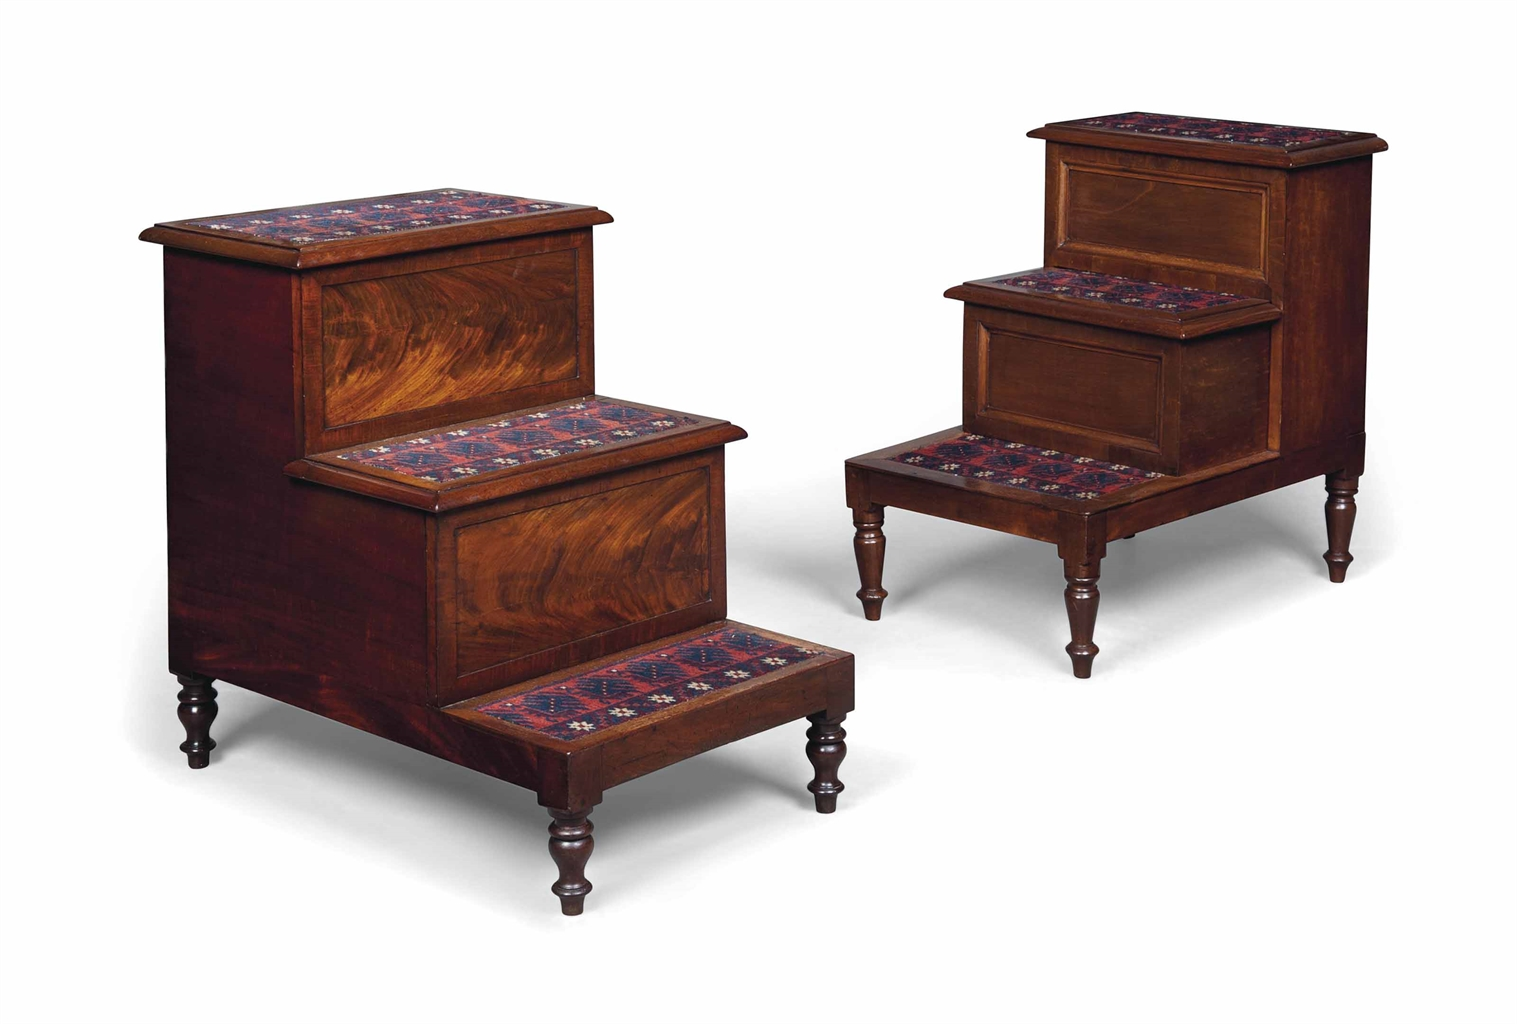 Two george iv mahogany bedside step commodes circa 1825 for Furniture 1825